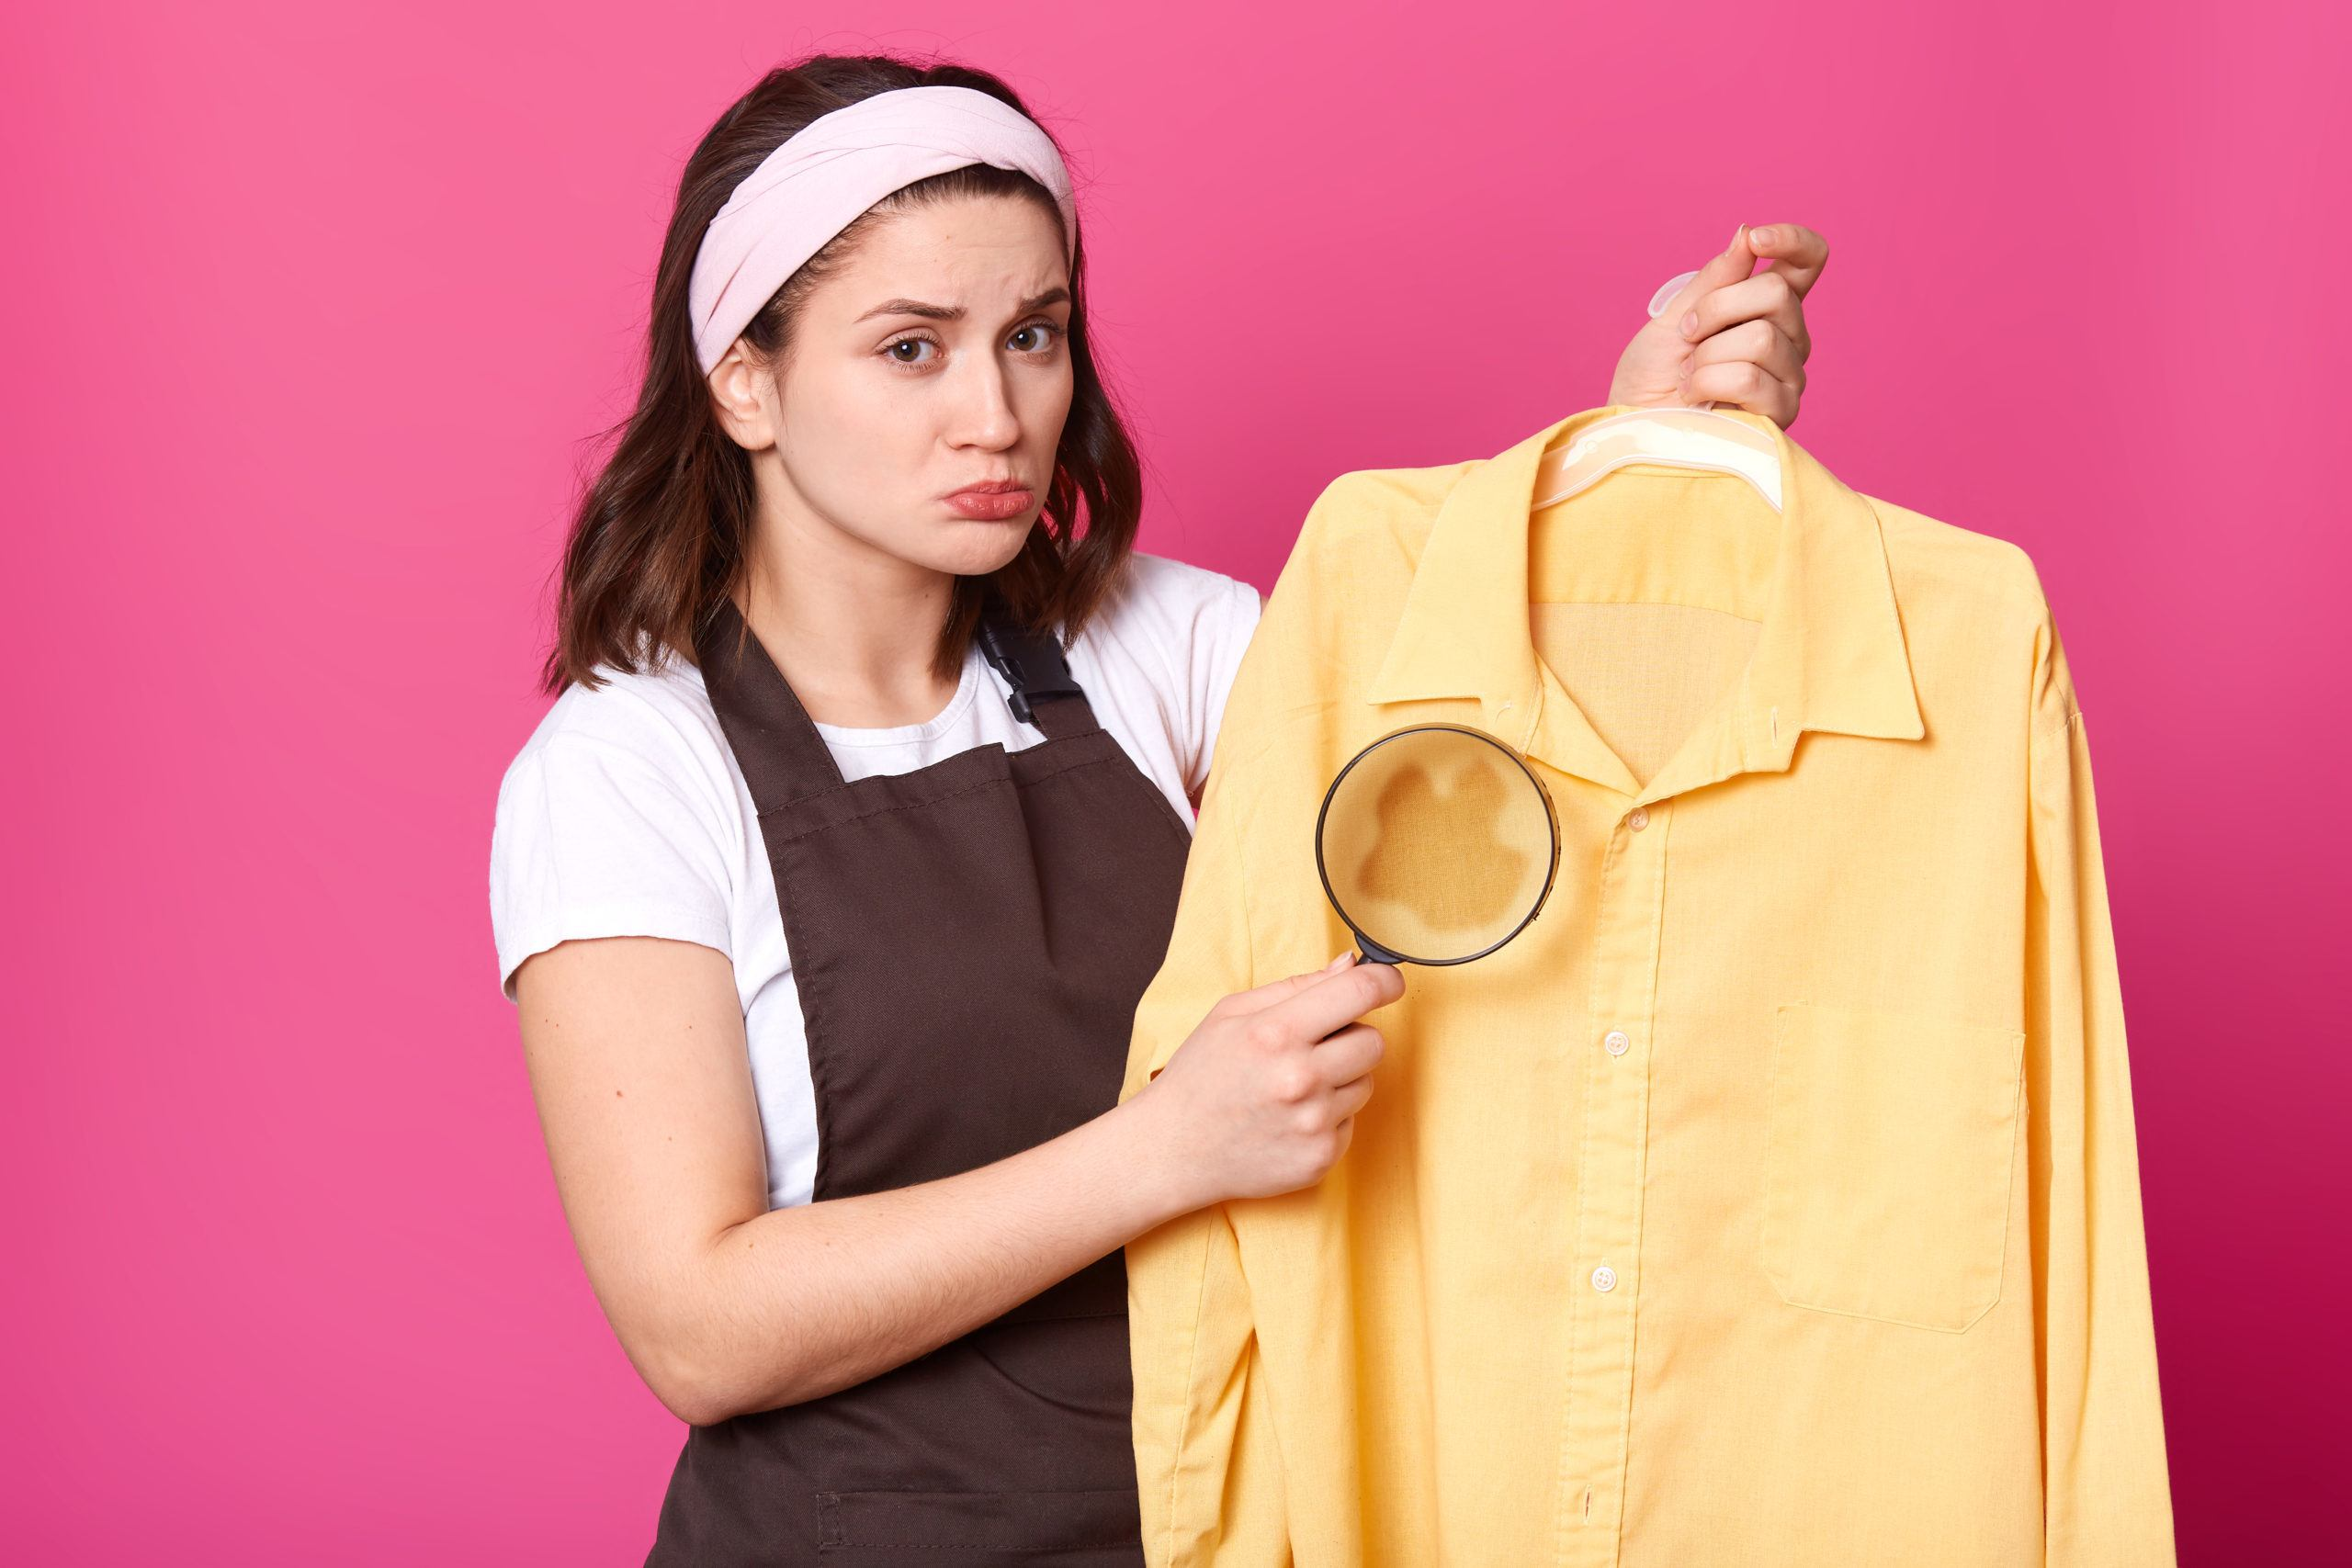 Brunette housewife holds yellow shirt after laundry with coffee stain on fabric, having magnifying glass in one hand. Emotional cute young model wearing brown apron, white t shirt and headband.